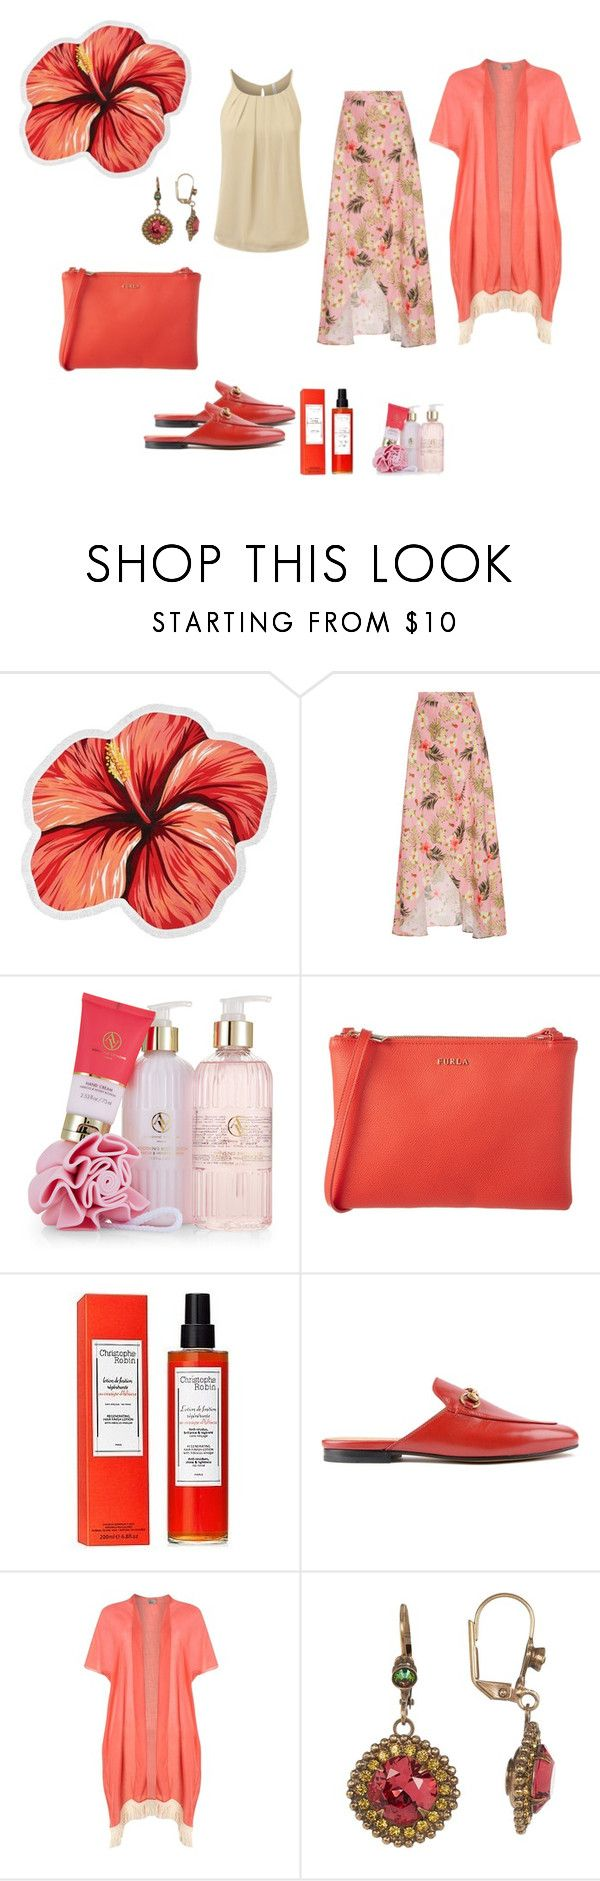 """""""Hibiscus"""" by chauert ❤ liked on Polyvore featuring LaMont, Miguelina, Adrienne Vittadini, Furla, Christophe Robin, Gucci, Dorothy Perkins and Sorrelli"""